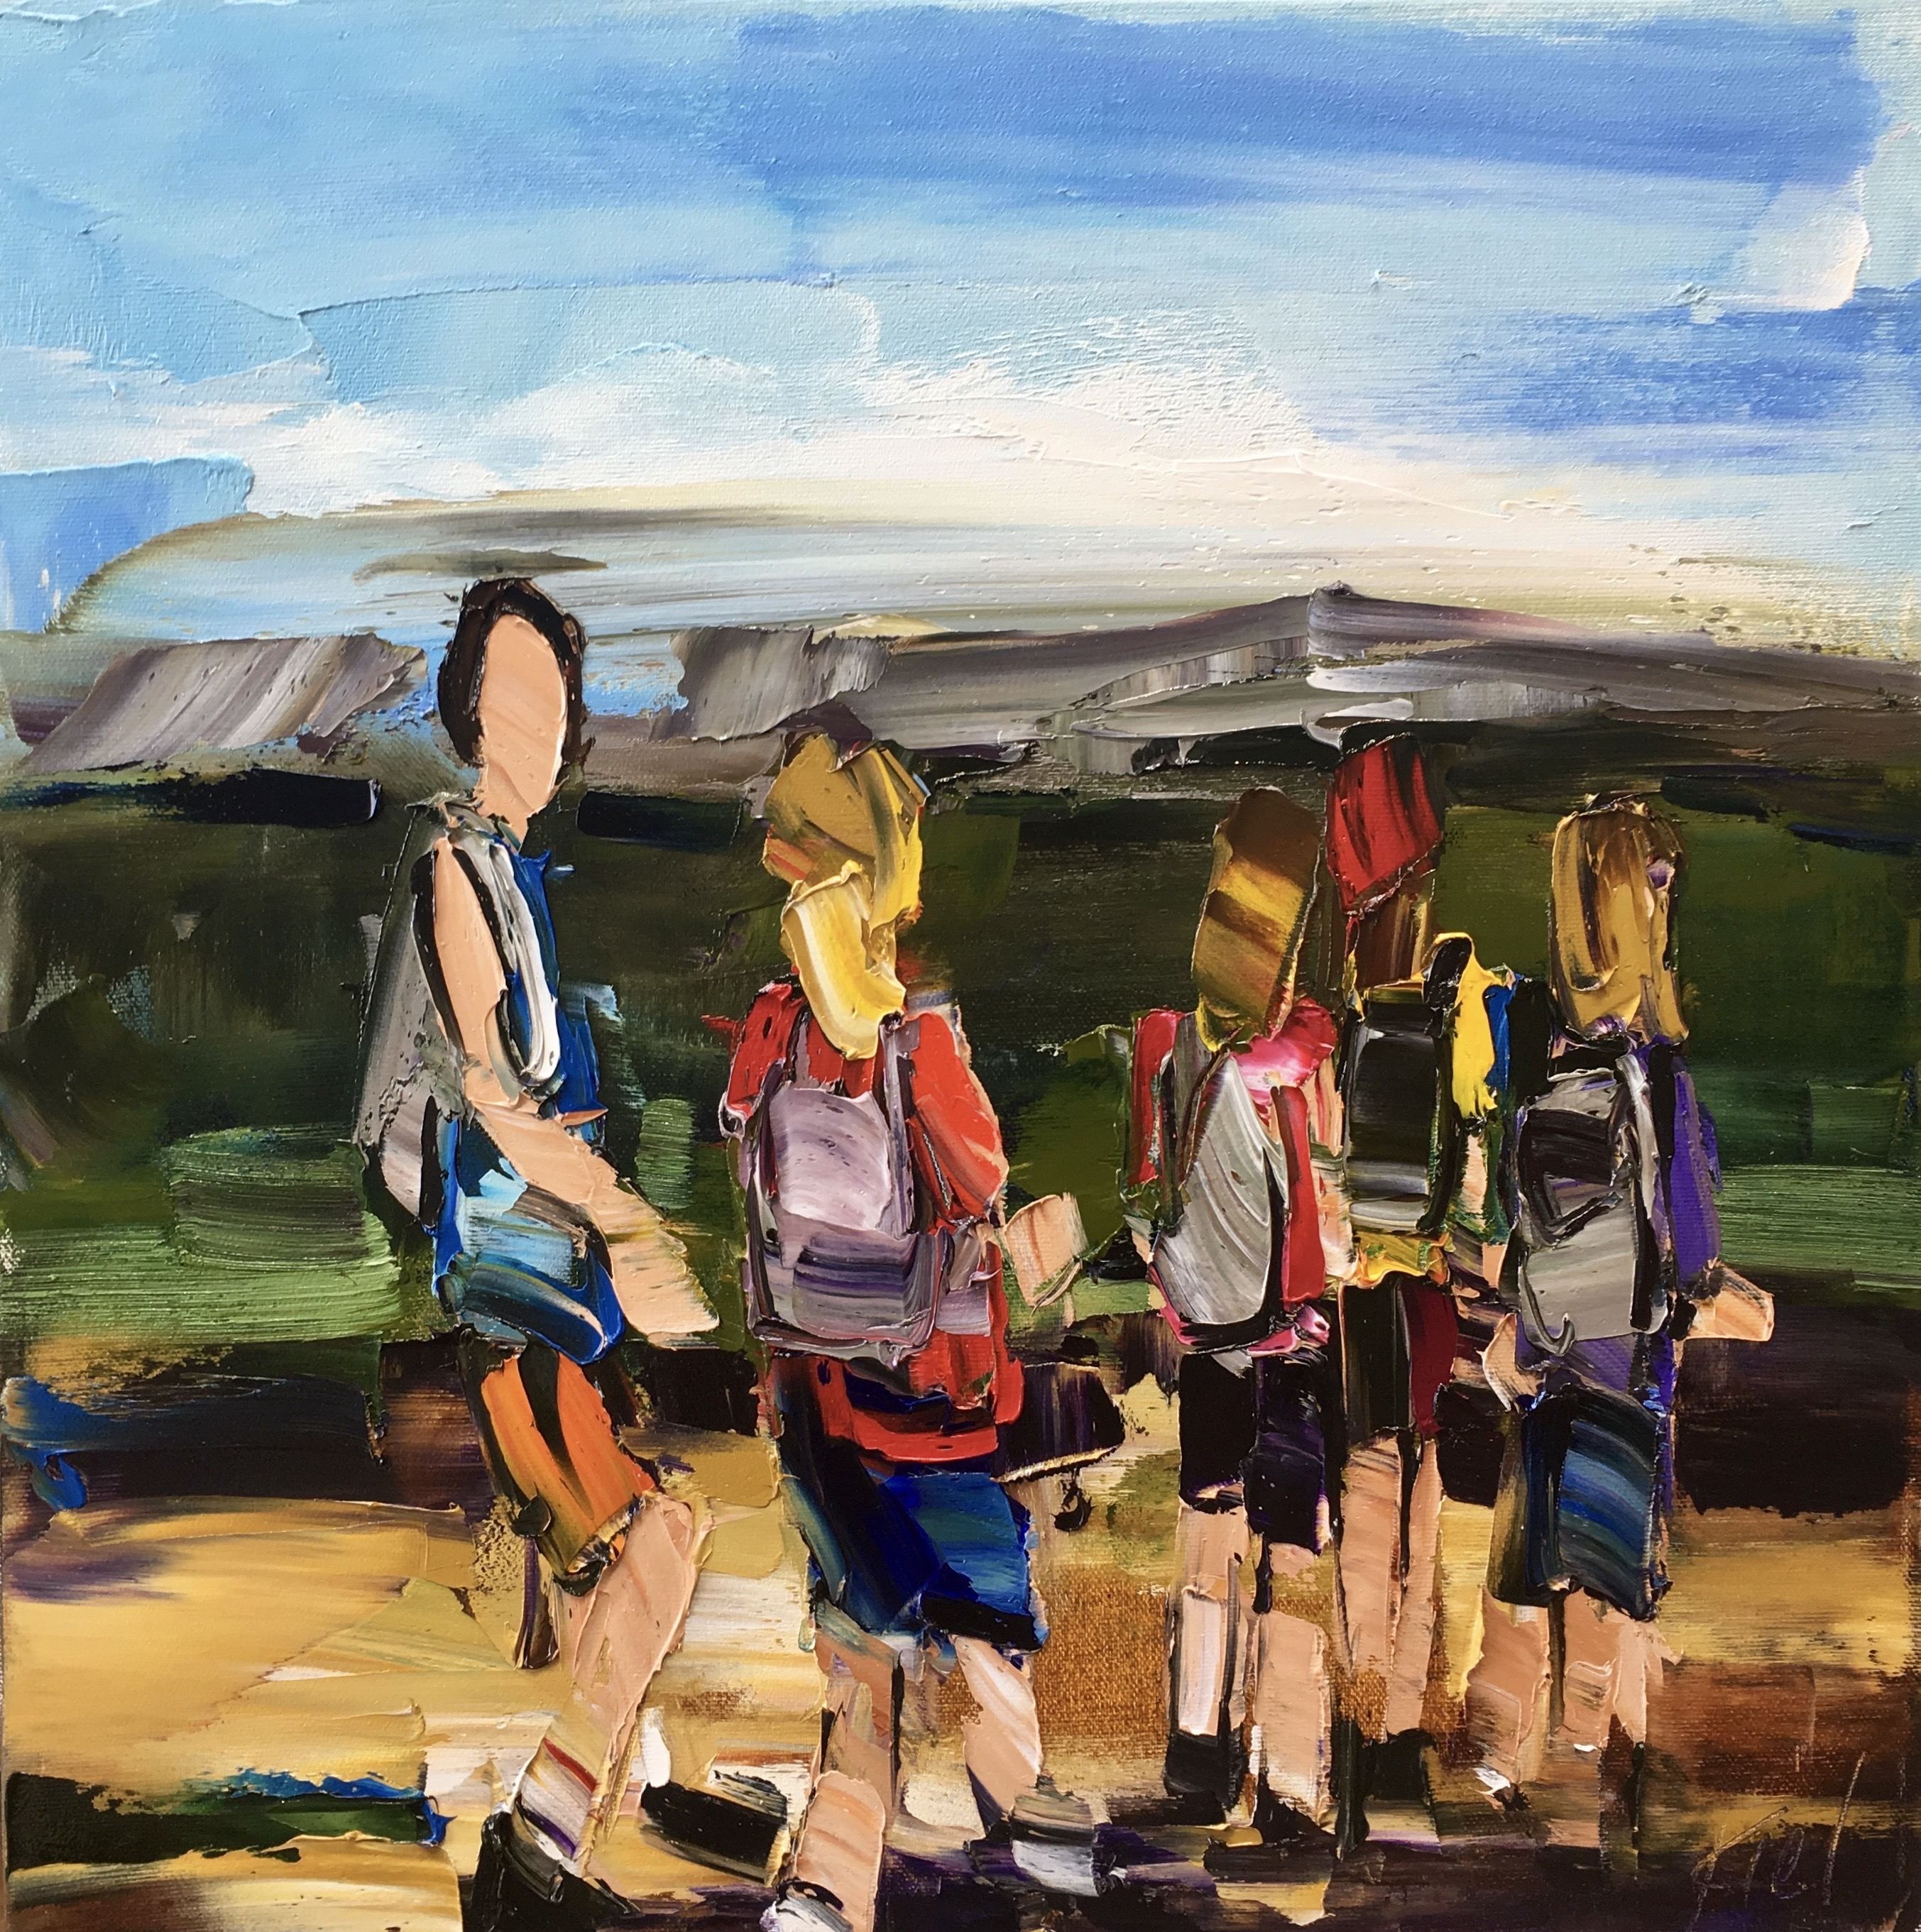 Every Summer Has Its Own Story 1, oil painting by Kimberly Kiel | Effusion Art Gallery + Cast Glass Studio, Invermere BC